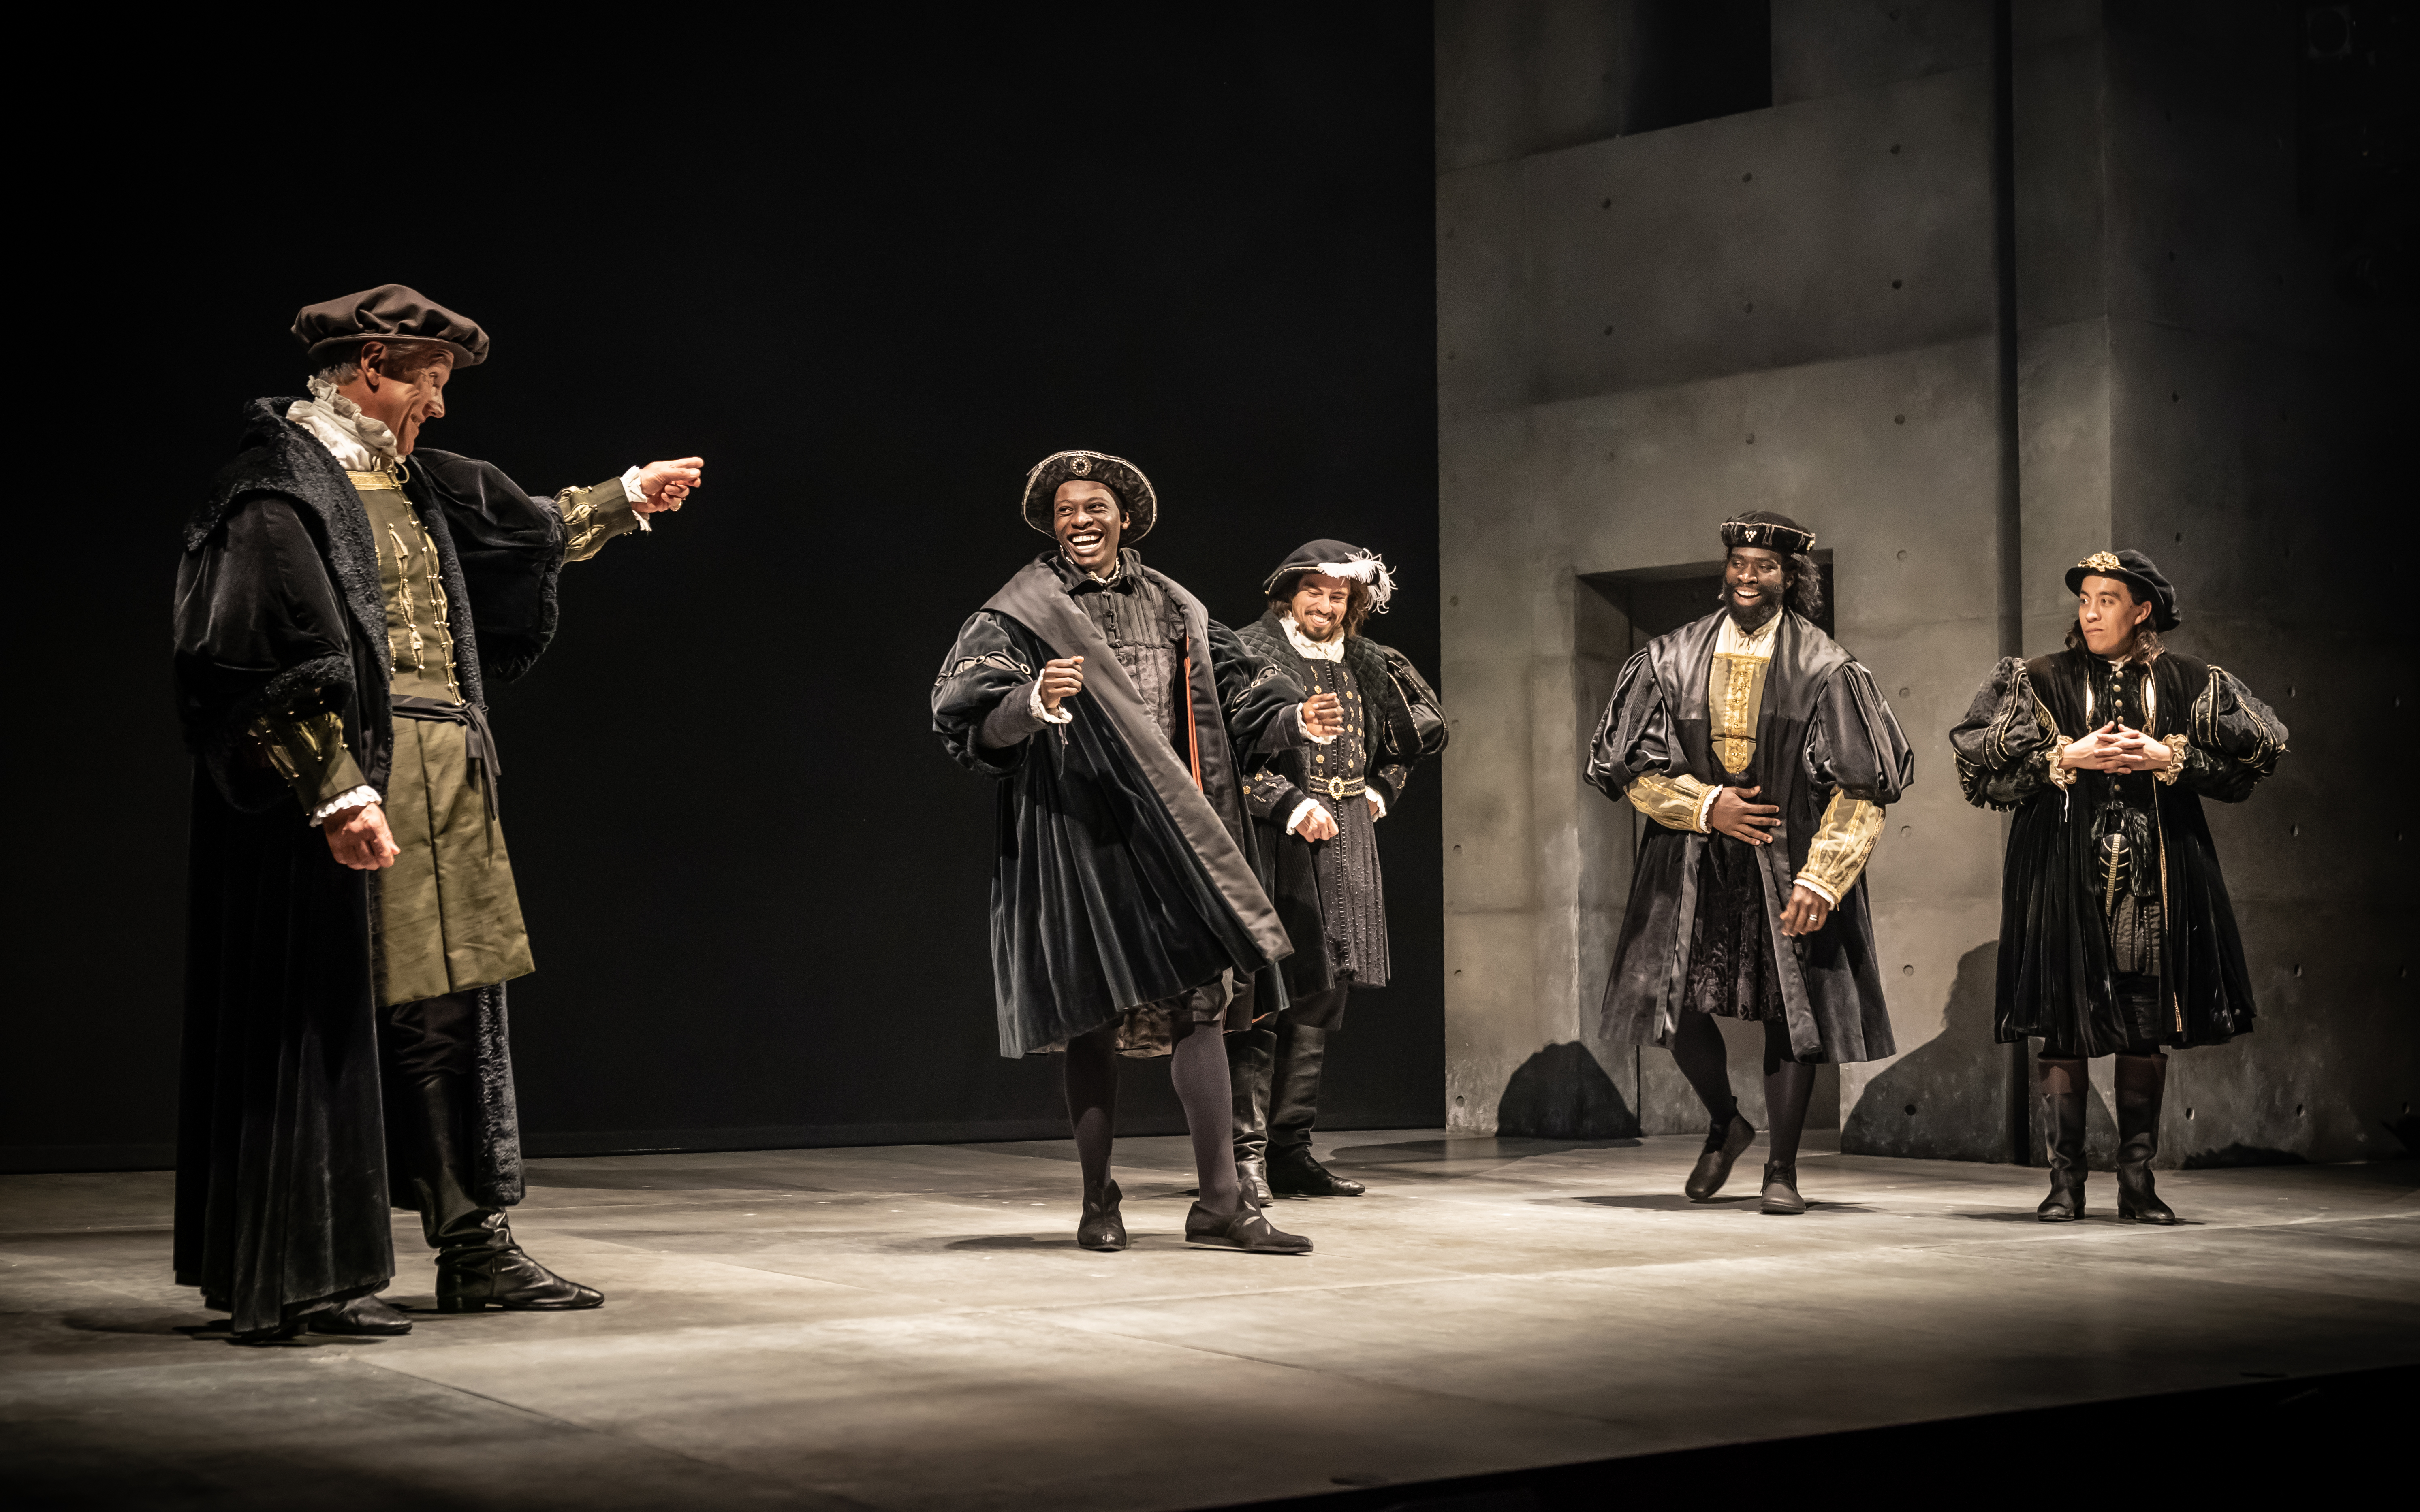 Ben Miles as Thomas Cromwell, Terique Jarrett as Gregory Cromwell, Geoffrey Lumb as Thomas Wriothesley, Jordan Kouamé as Rafe Sadler and Leo Wan as Richard Riche in The Mirror and the Light – Photo by Marc - Copy